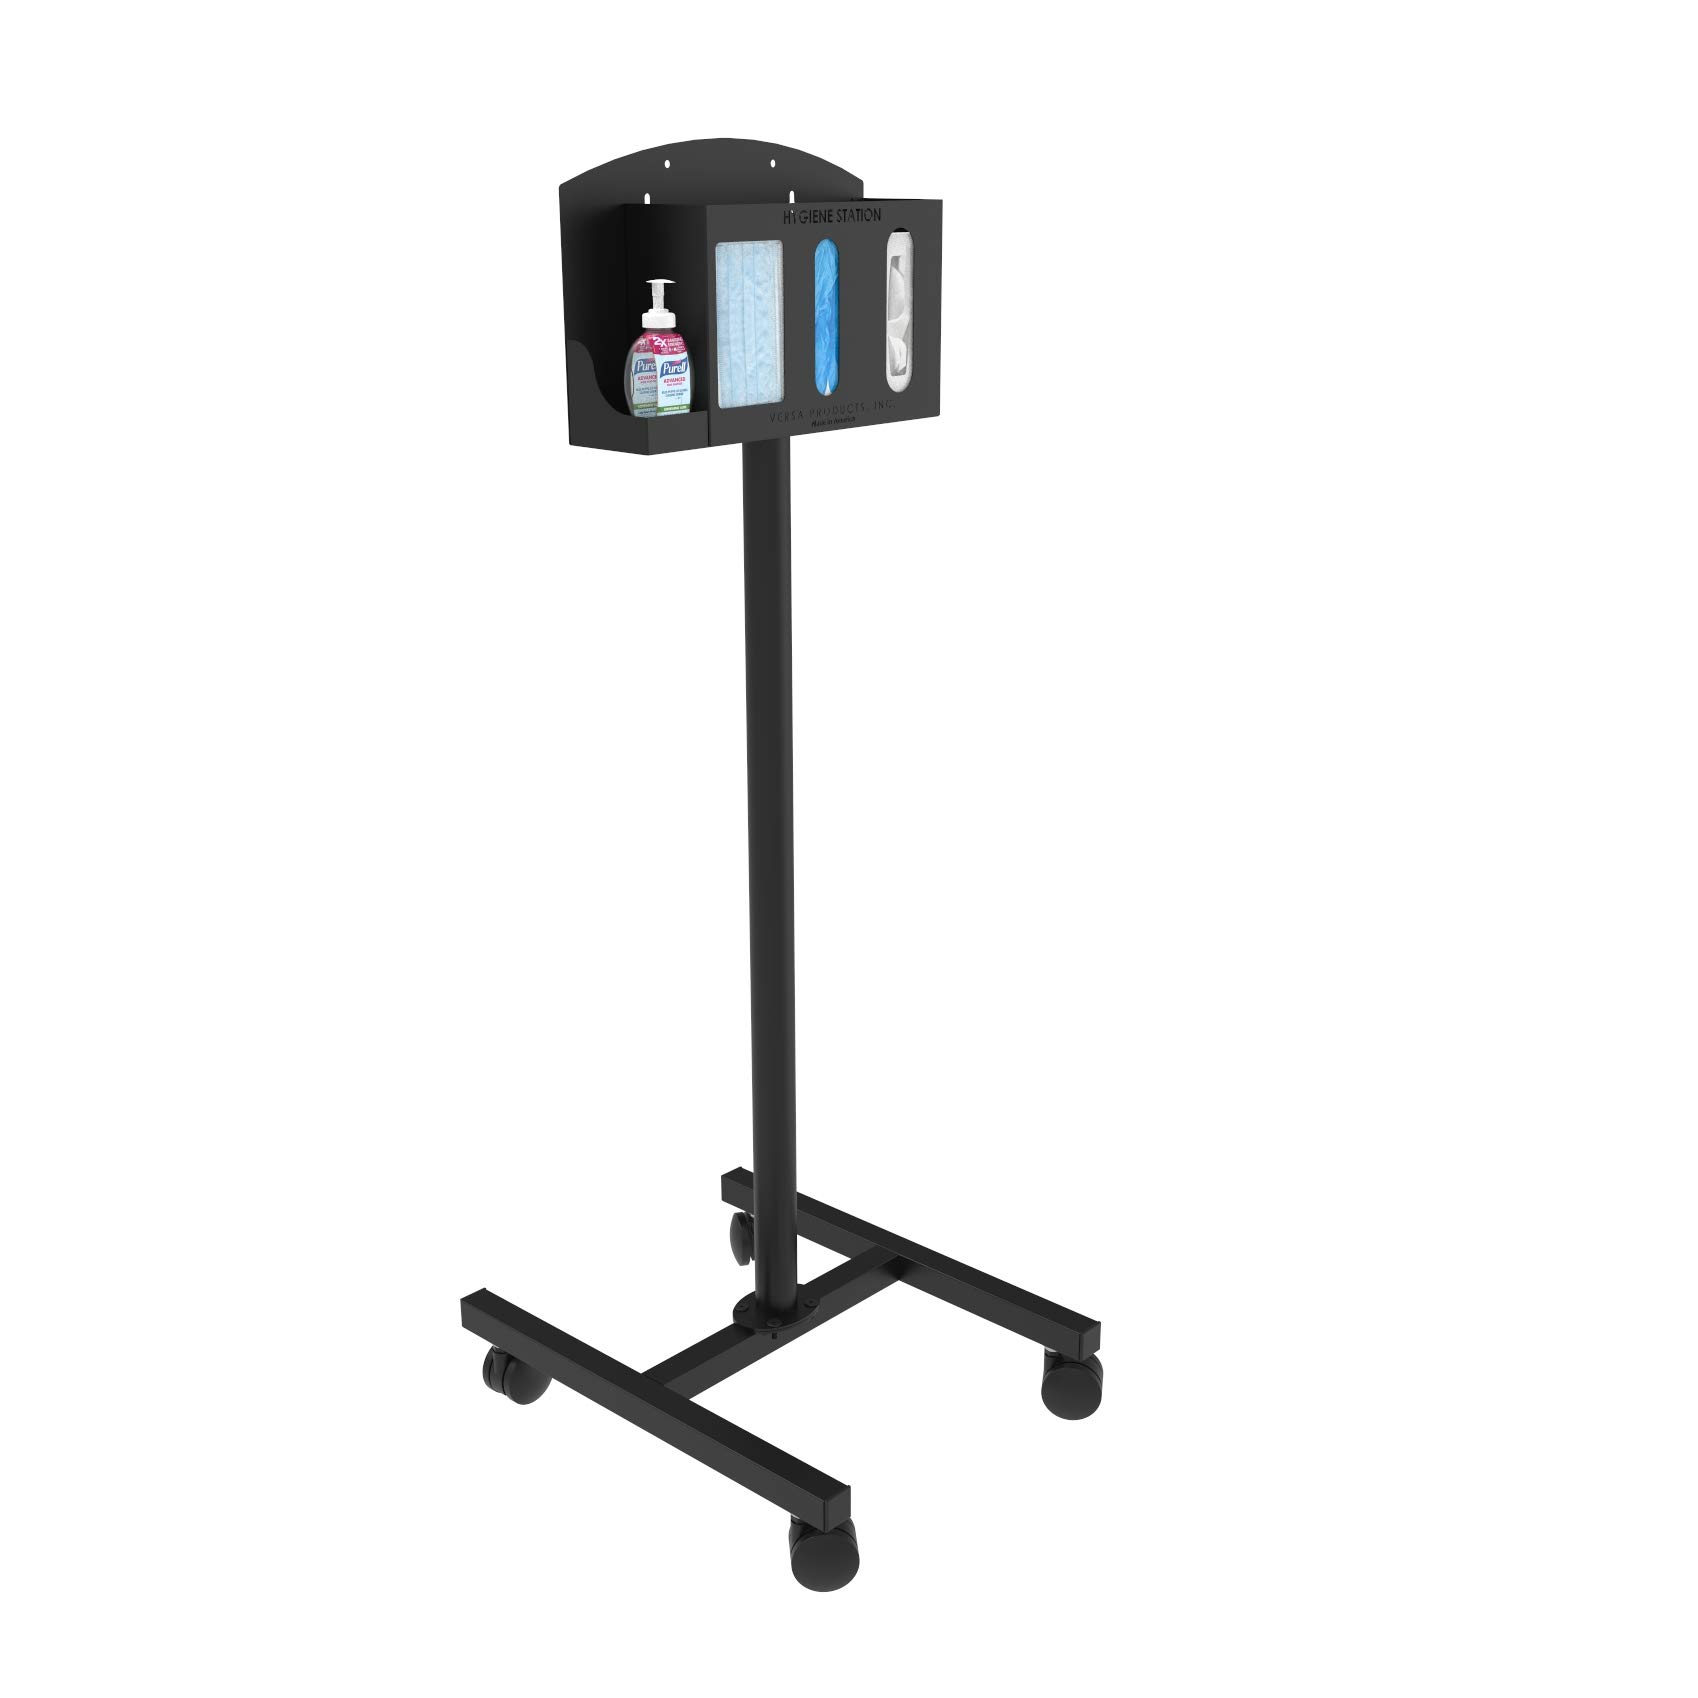 Respiratory Hygiene Sanitation Station by Versa Products   4 Compartments   18-Gauge Powder-Coated Steel   Mobile (4 Compartment, Black)